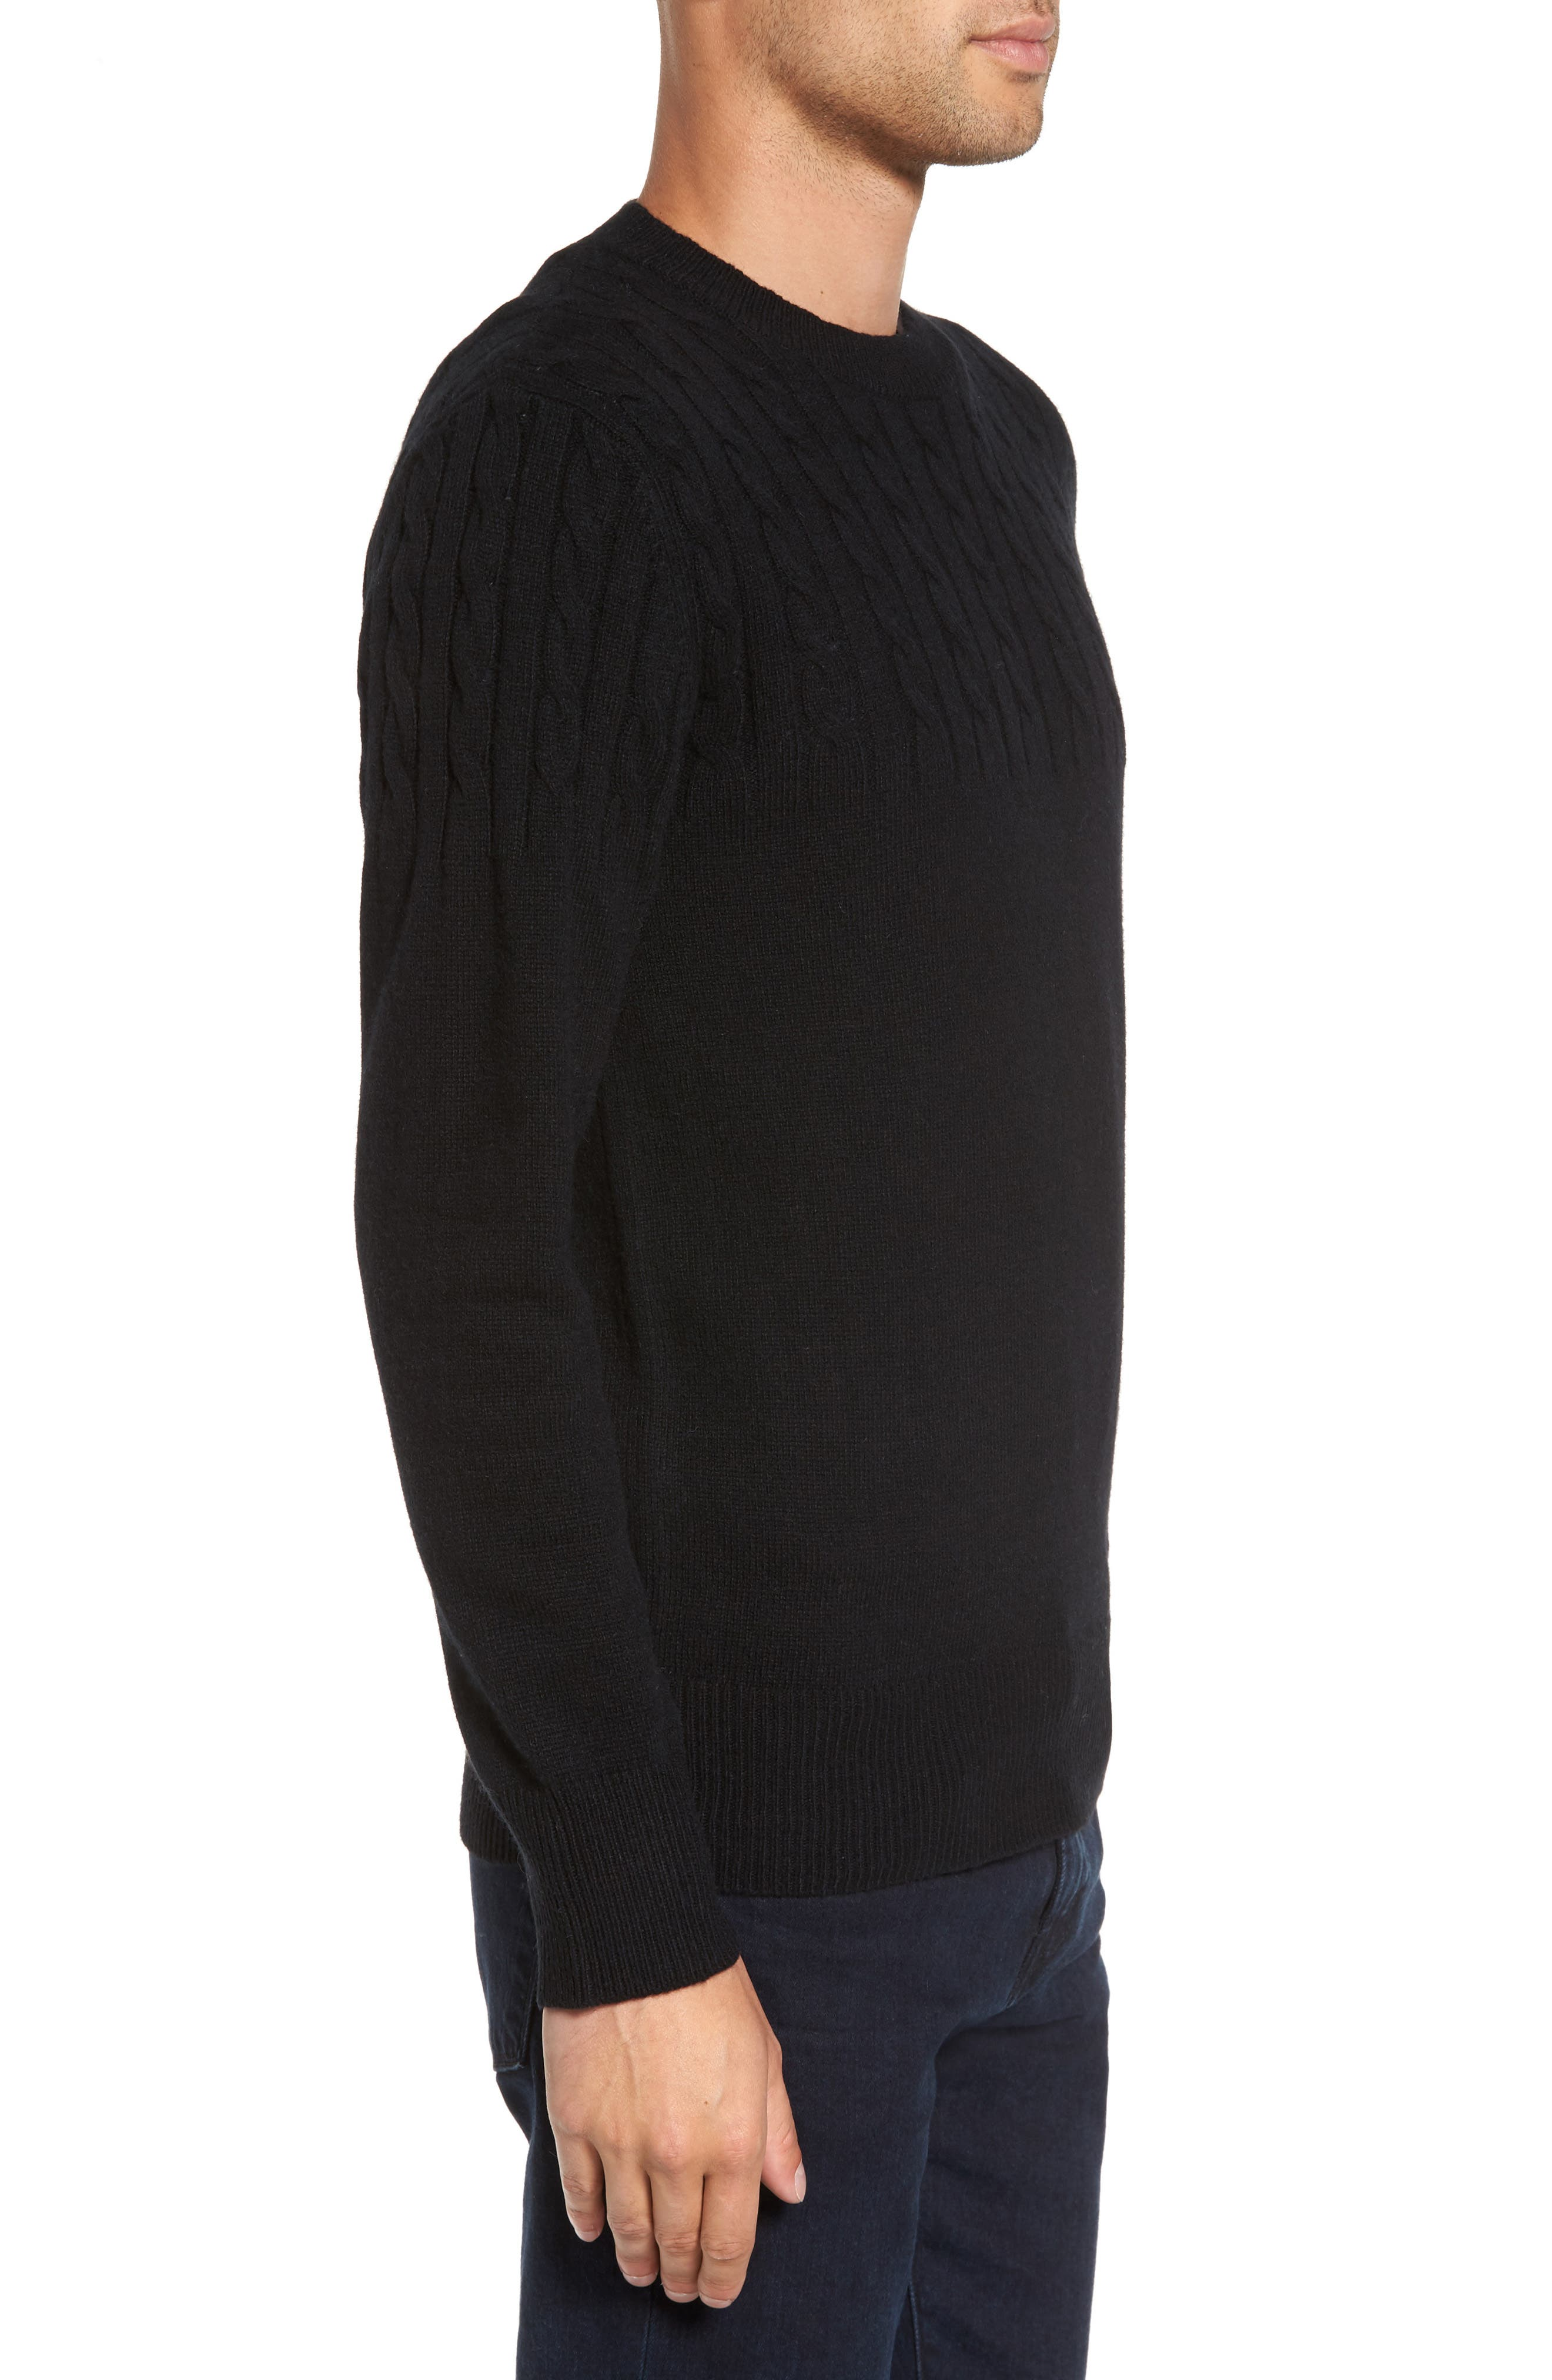 Wool Cable Knit Sweater,                             Alternate thumbnail 3, color,                             Black